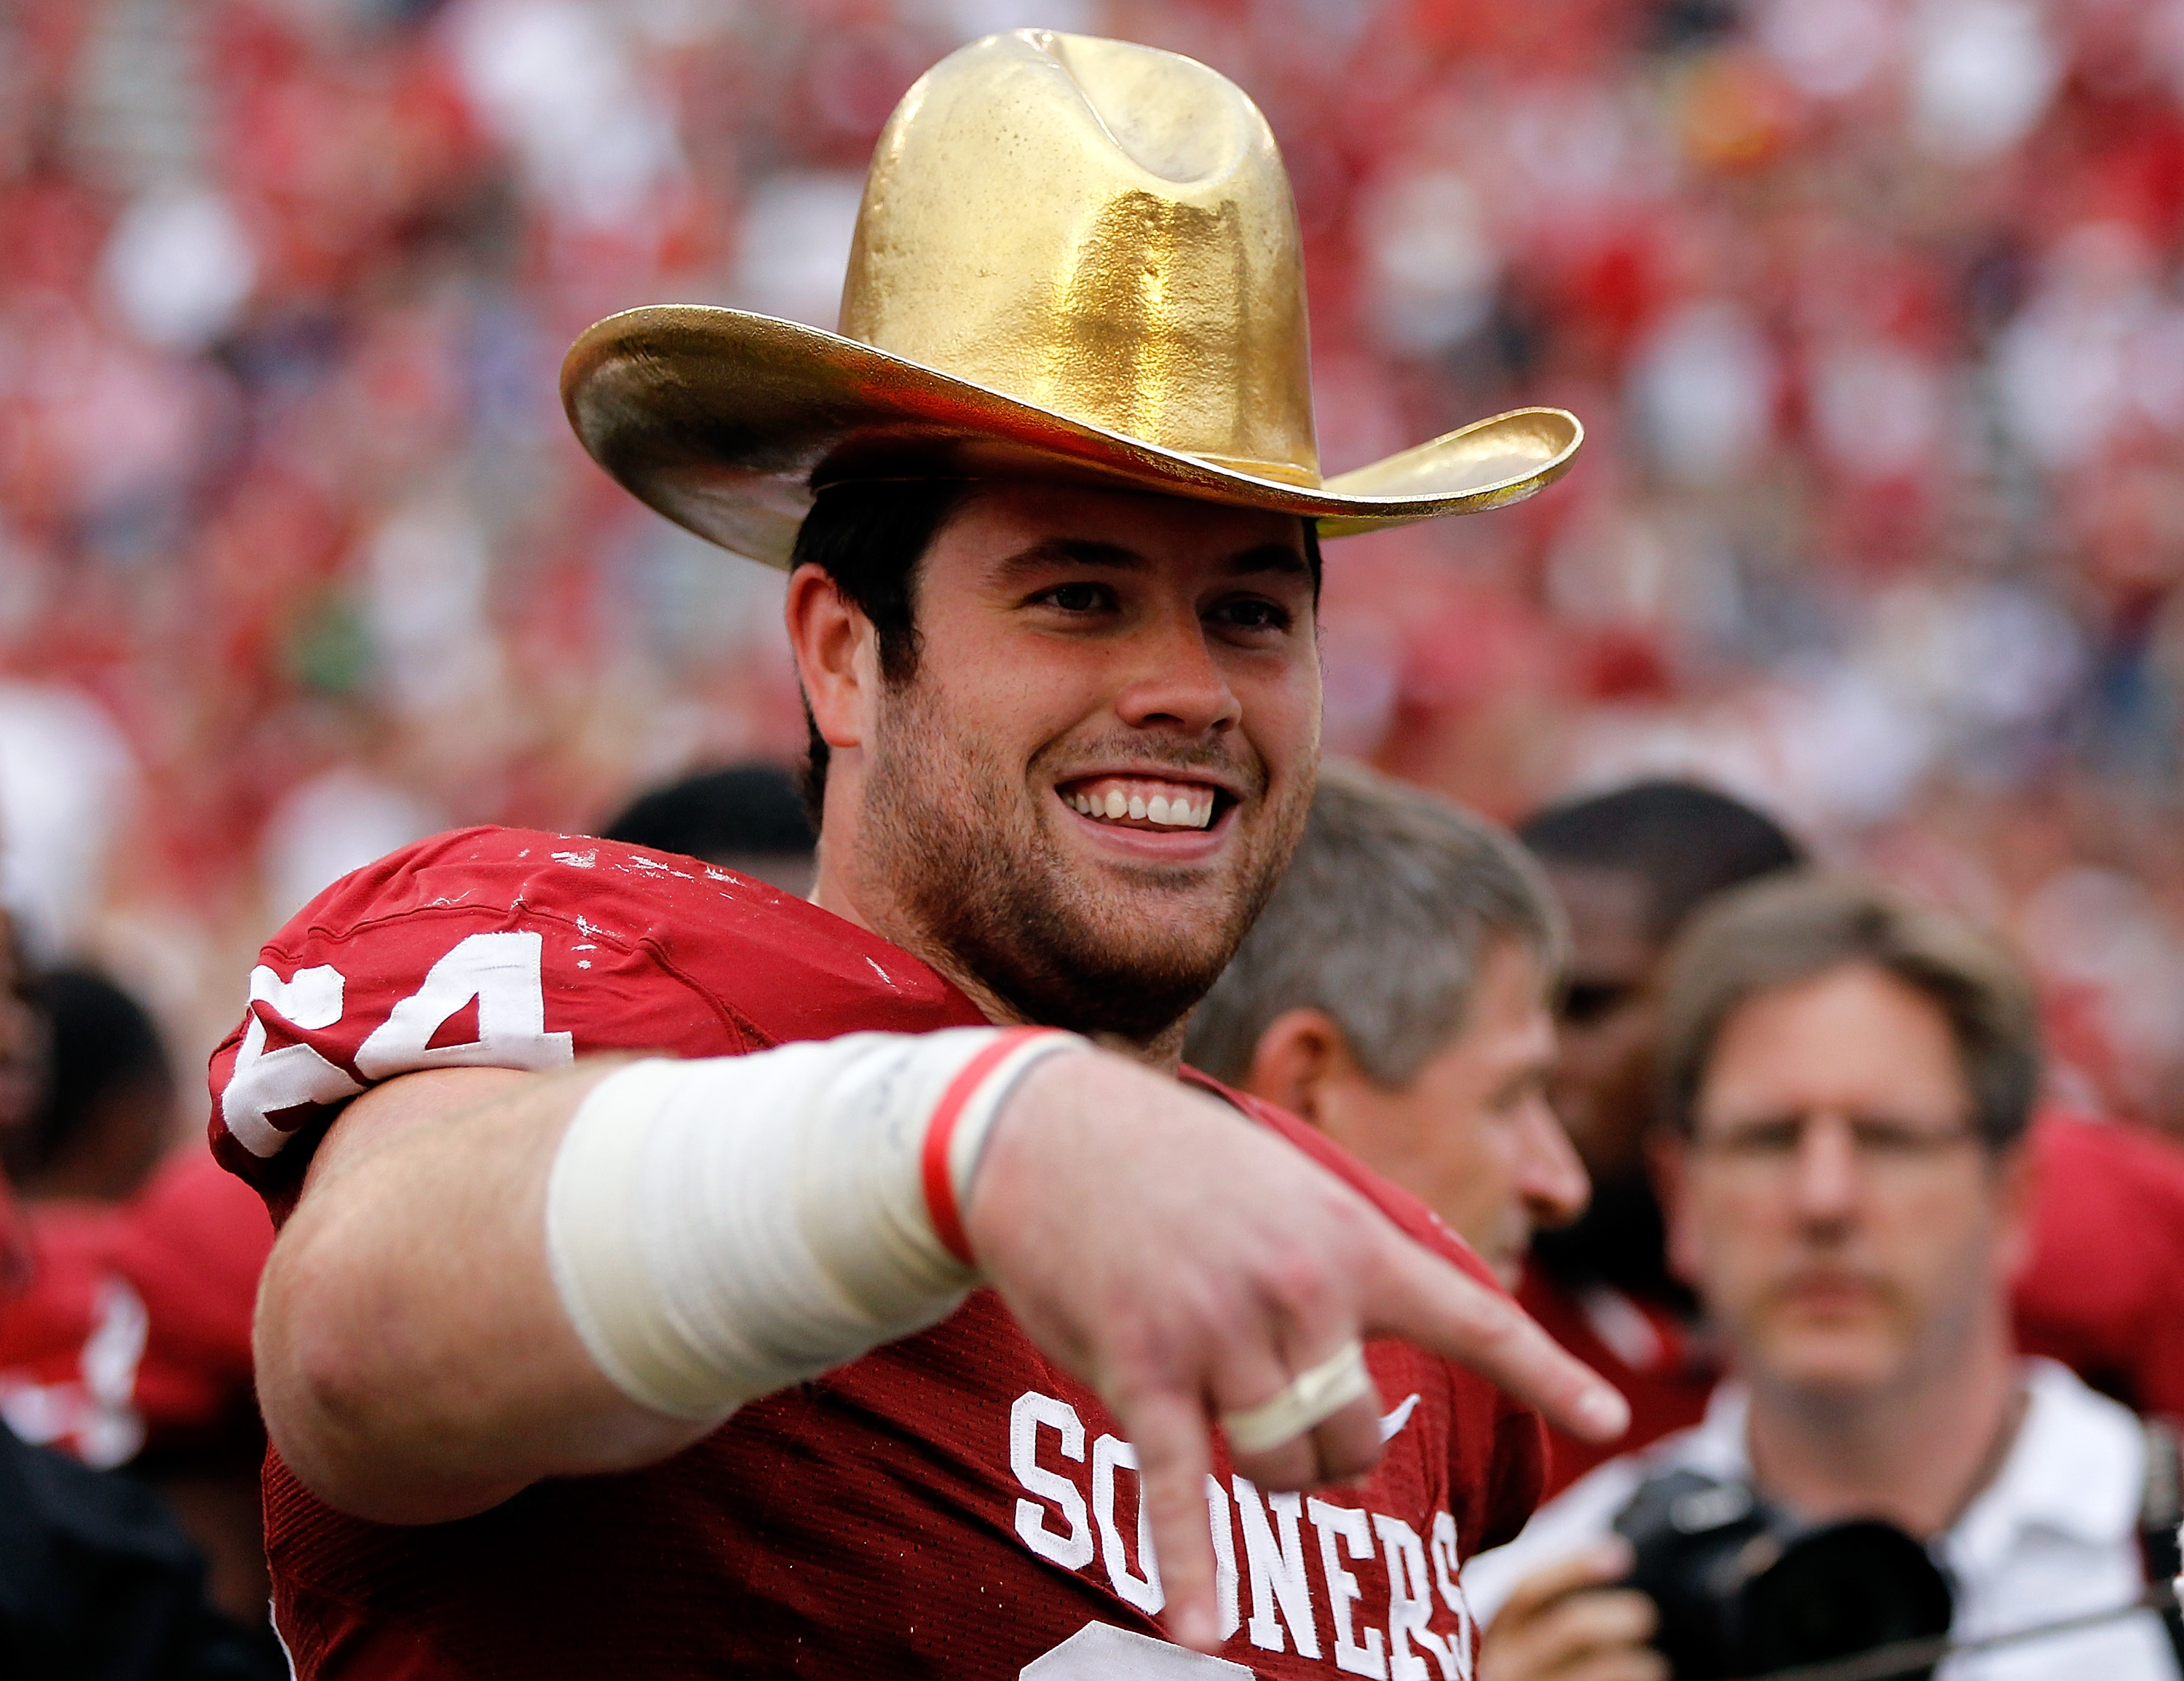 OKLAHOMA AND TEXAS PLAY FOR A GOLDEN HAT!